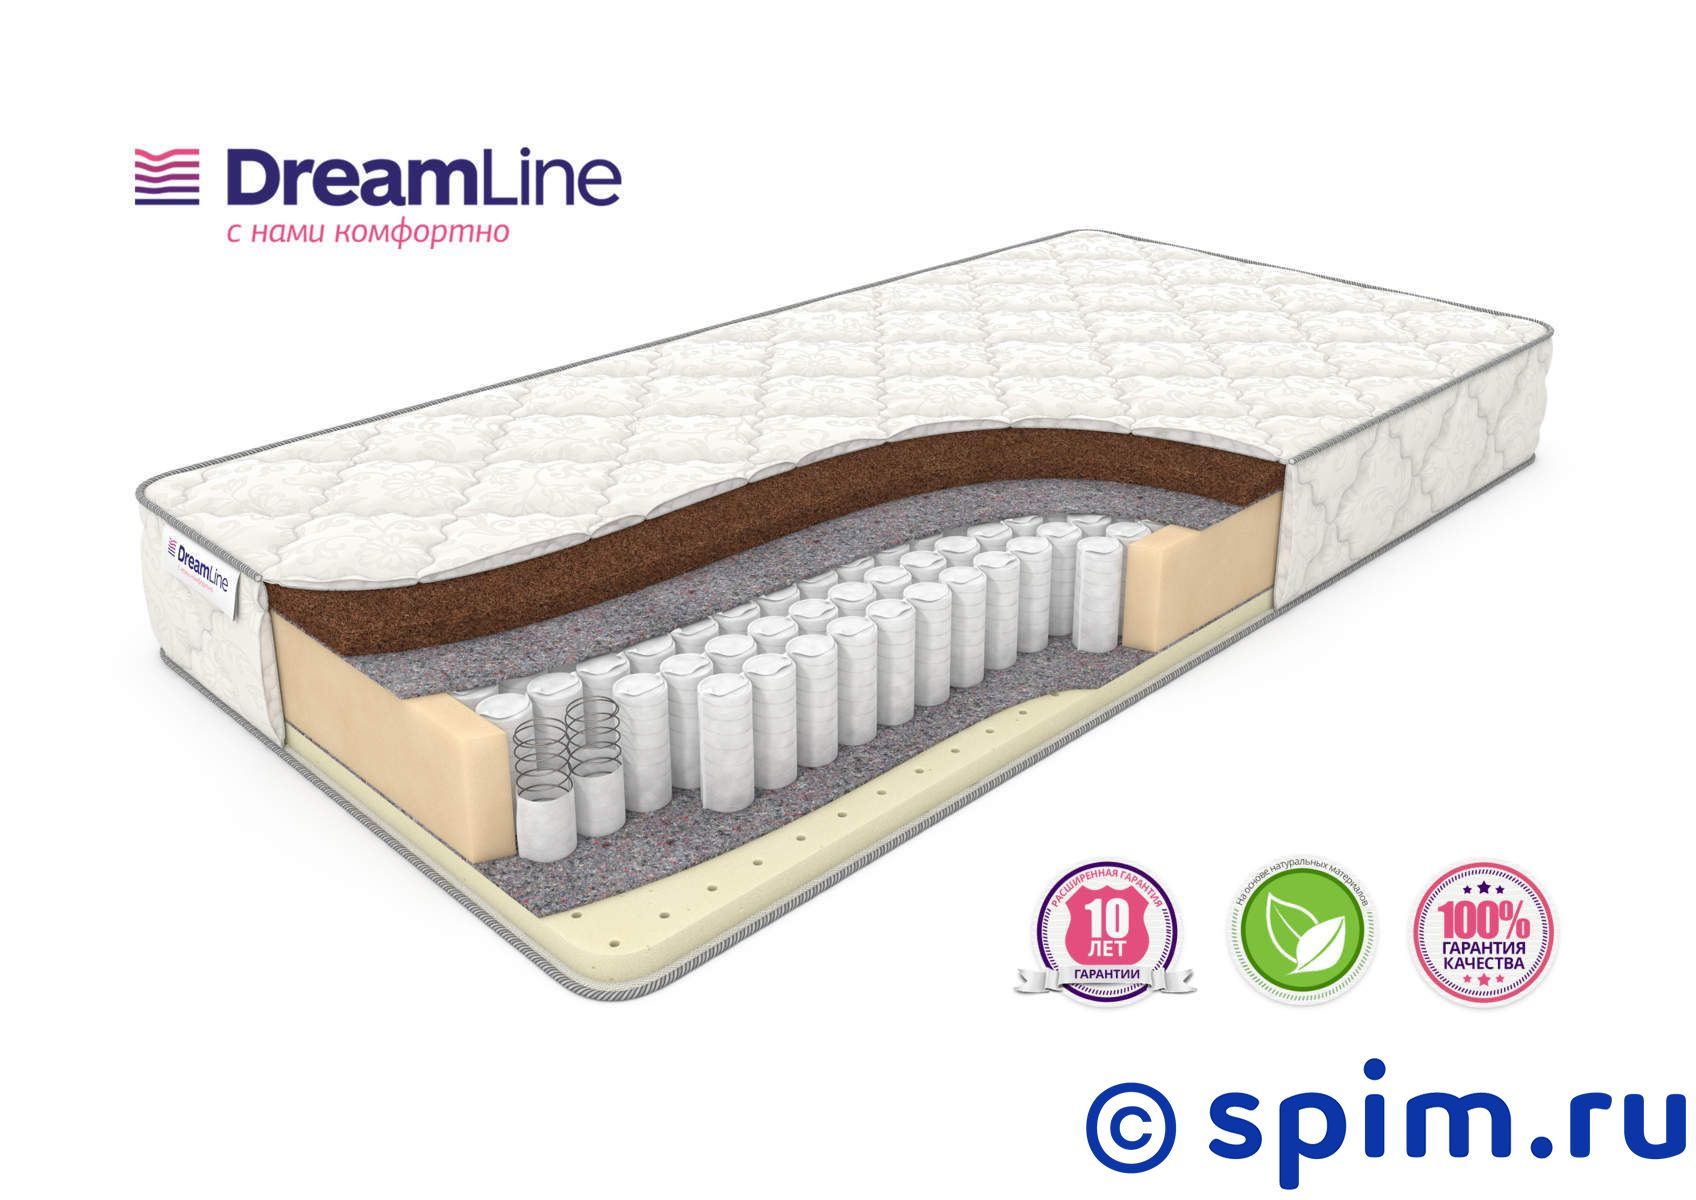 Матрас DreamLine SleepDream Tfk 150х200 см